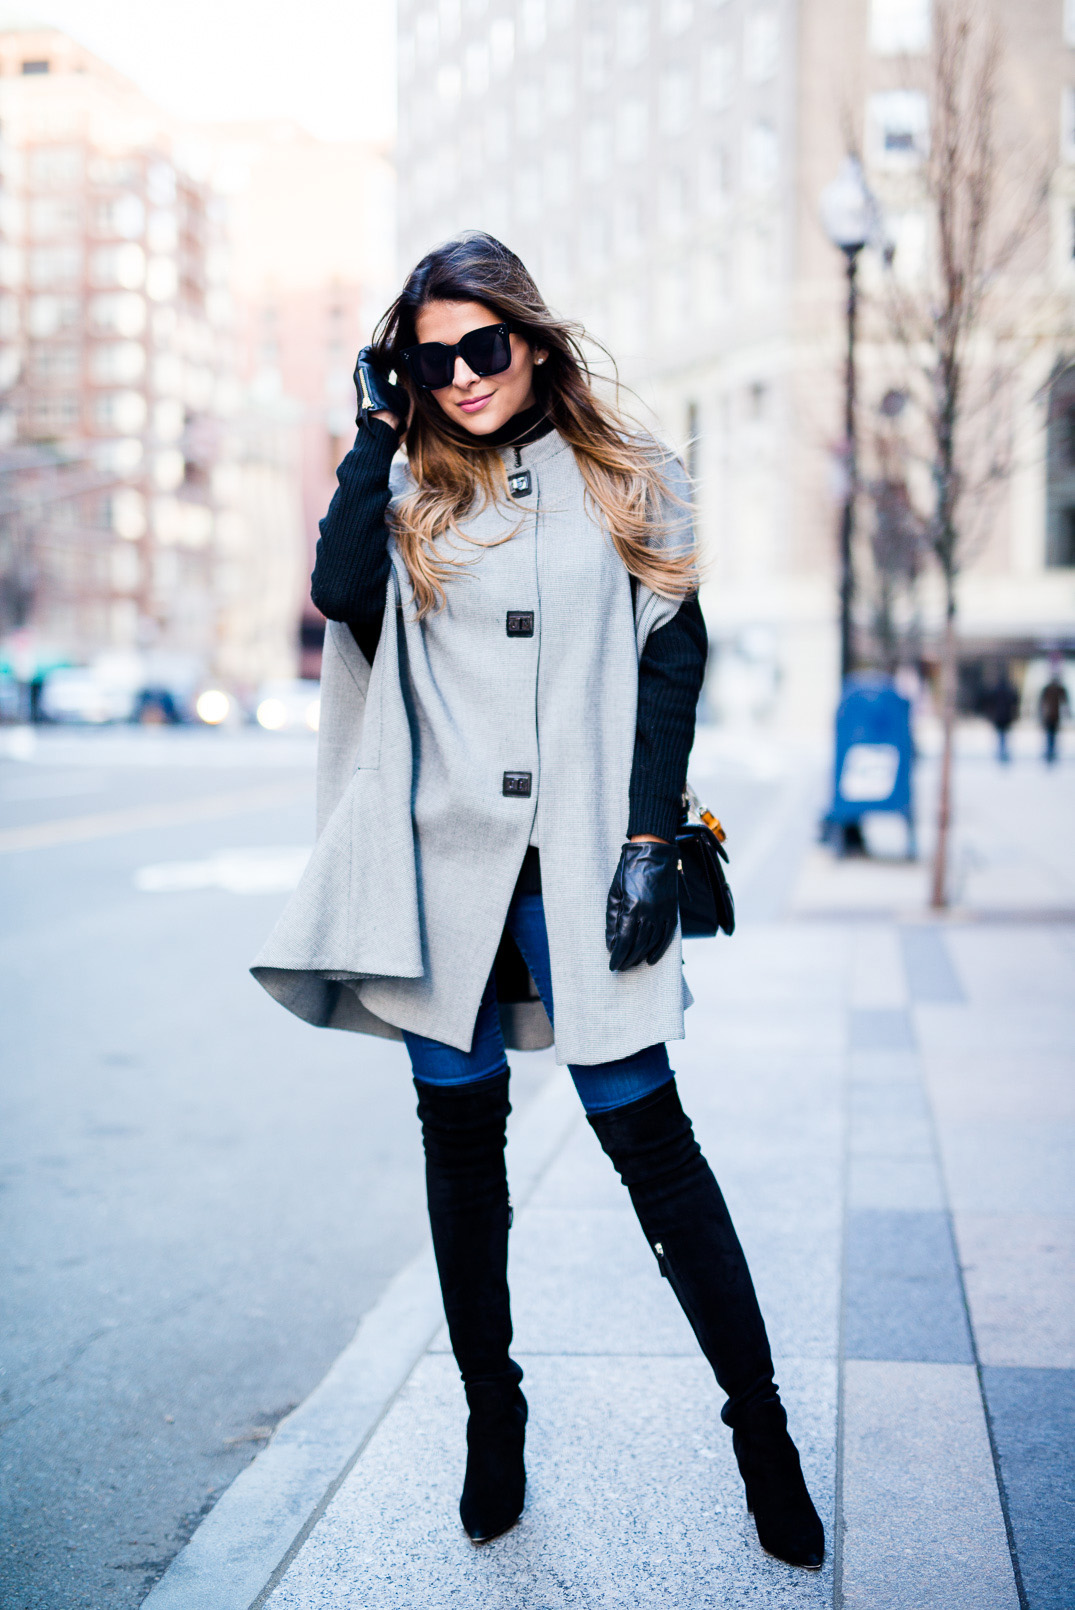 Pam Hetlinger is wearing a cape coat with thigh high boots and leather gloves, creating an overall stylish and glamorous look. Sunglasses are also a must have if the weather is good! Cape: Mango, Jeans: Topshop, Boots: Delamn, Bag: Gucci.